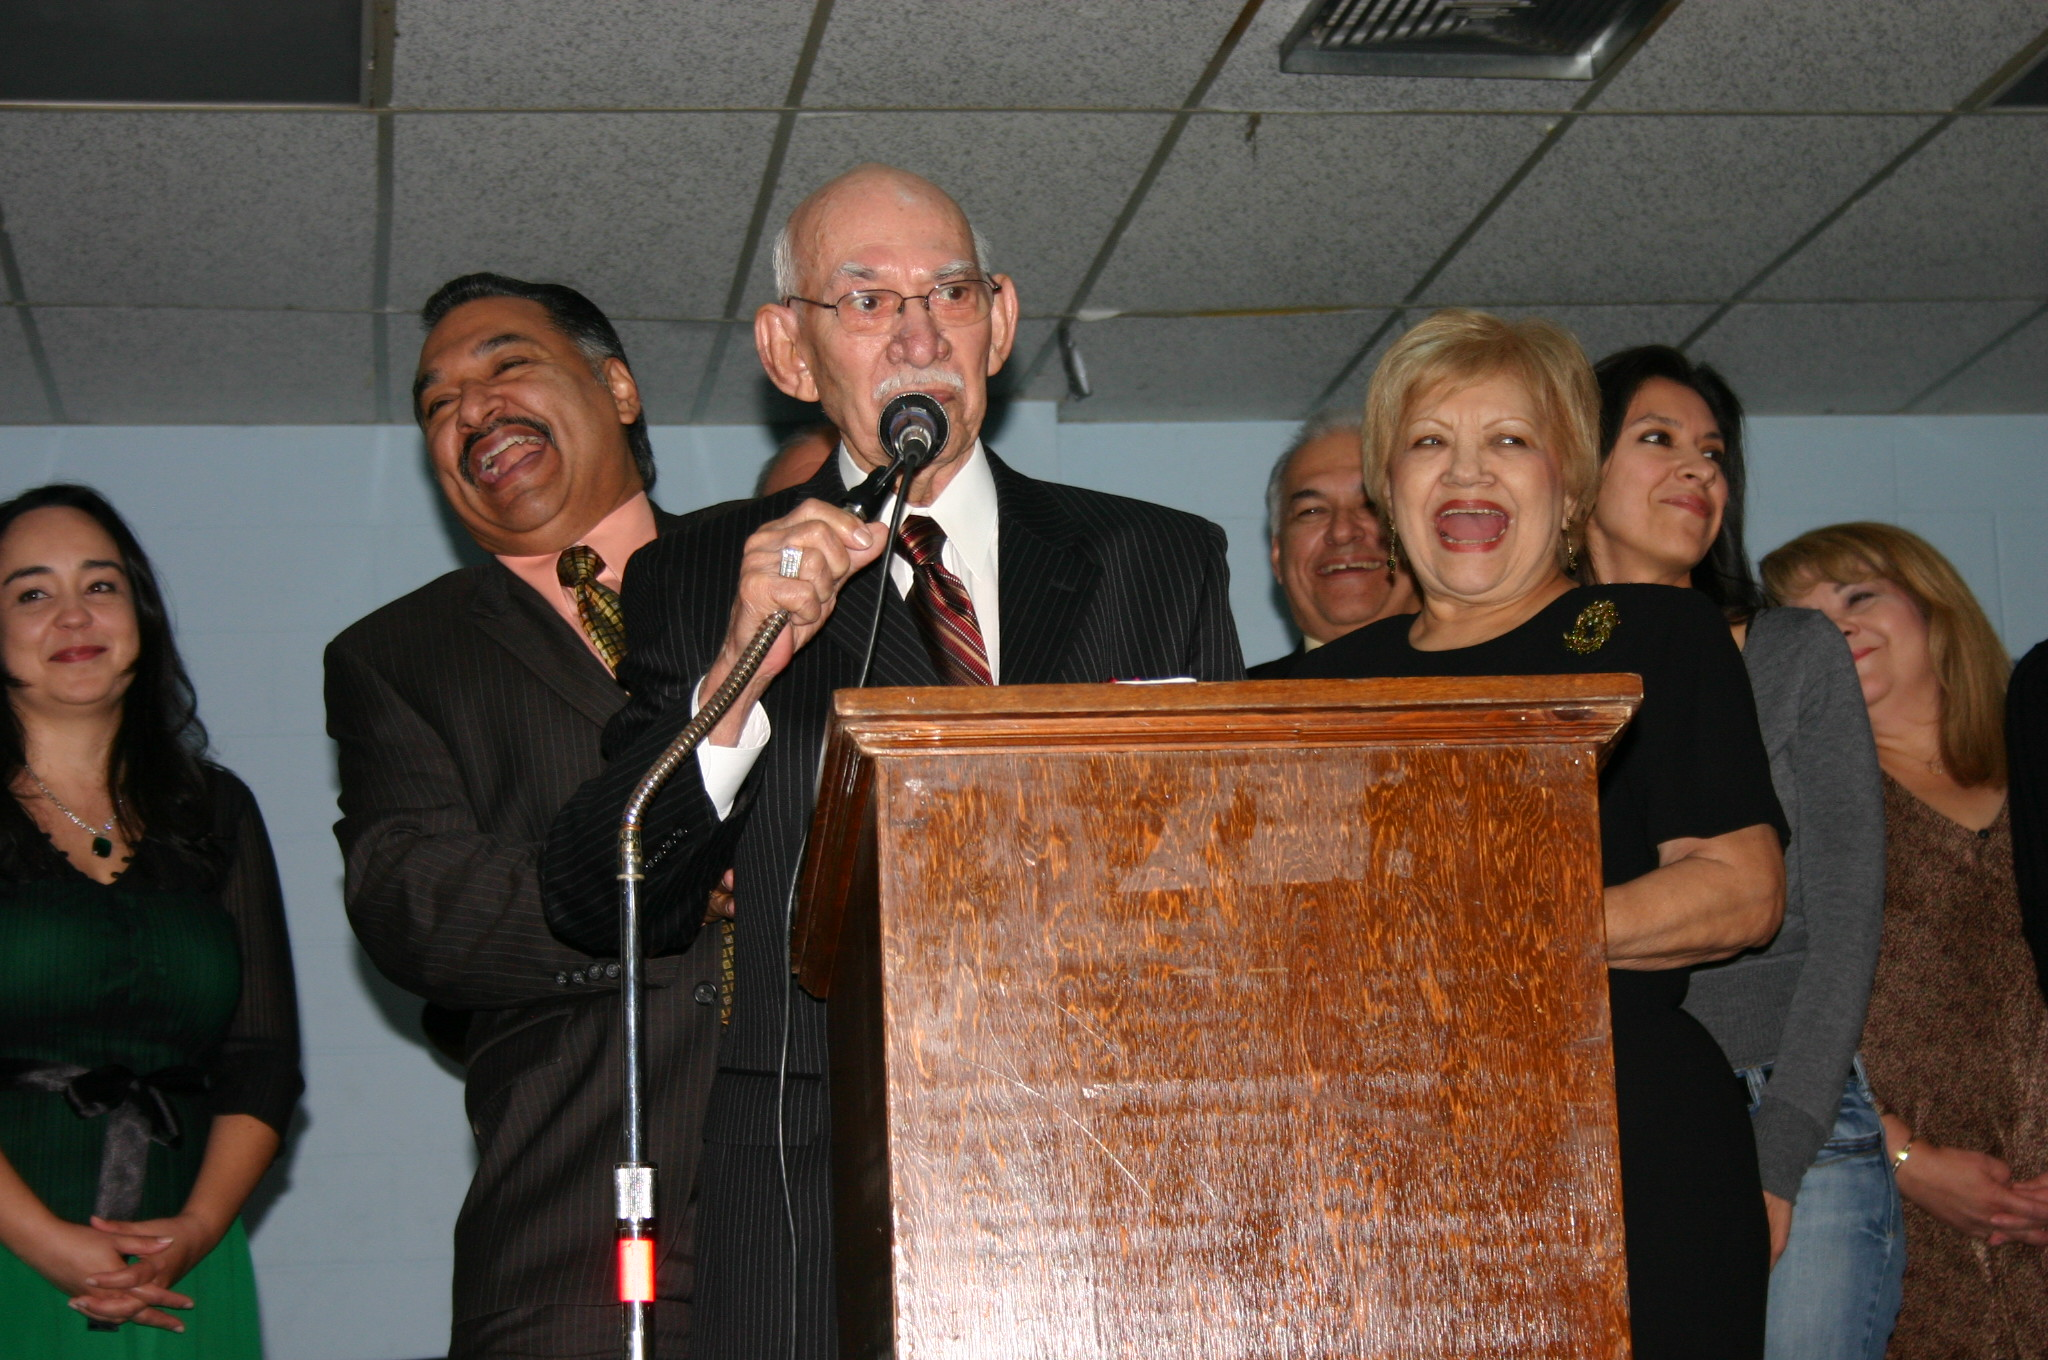 Agapito's acceptance speech at Conjunto Music Induction Awards